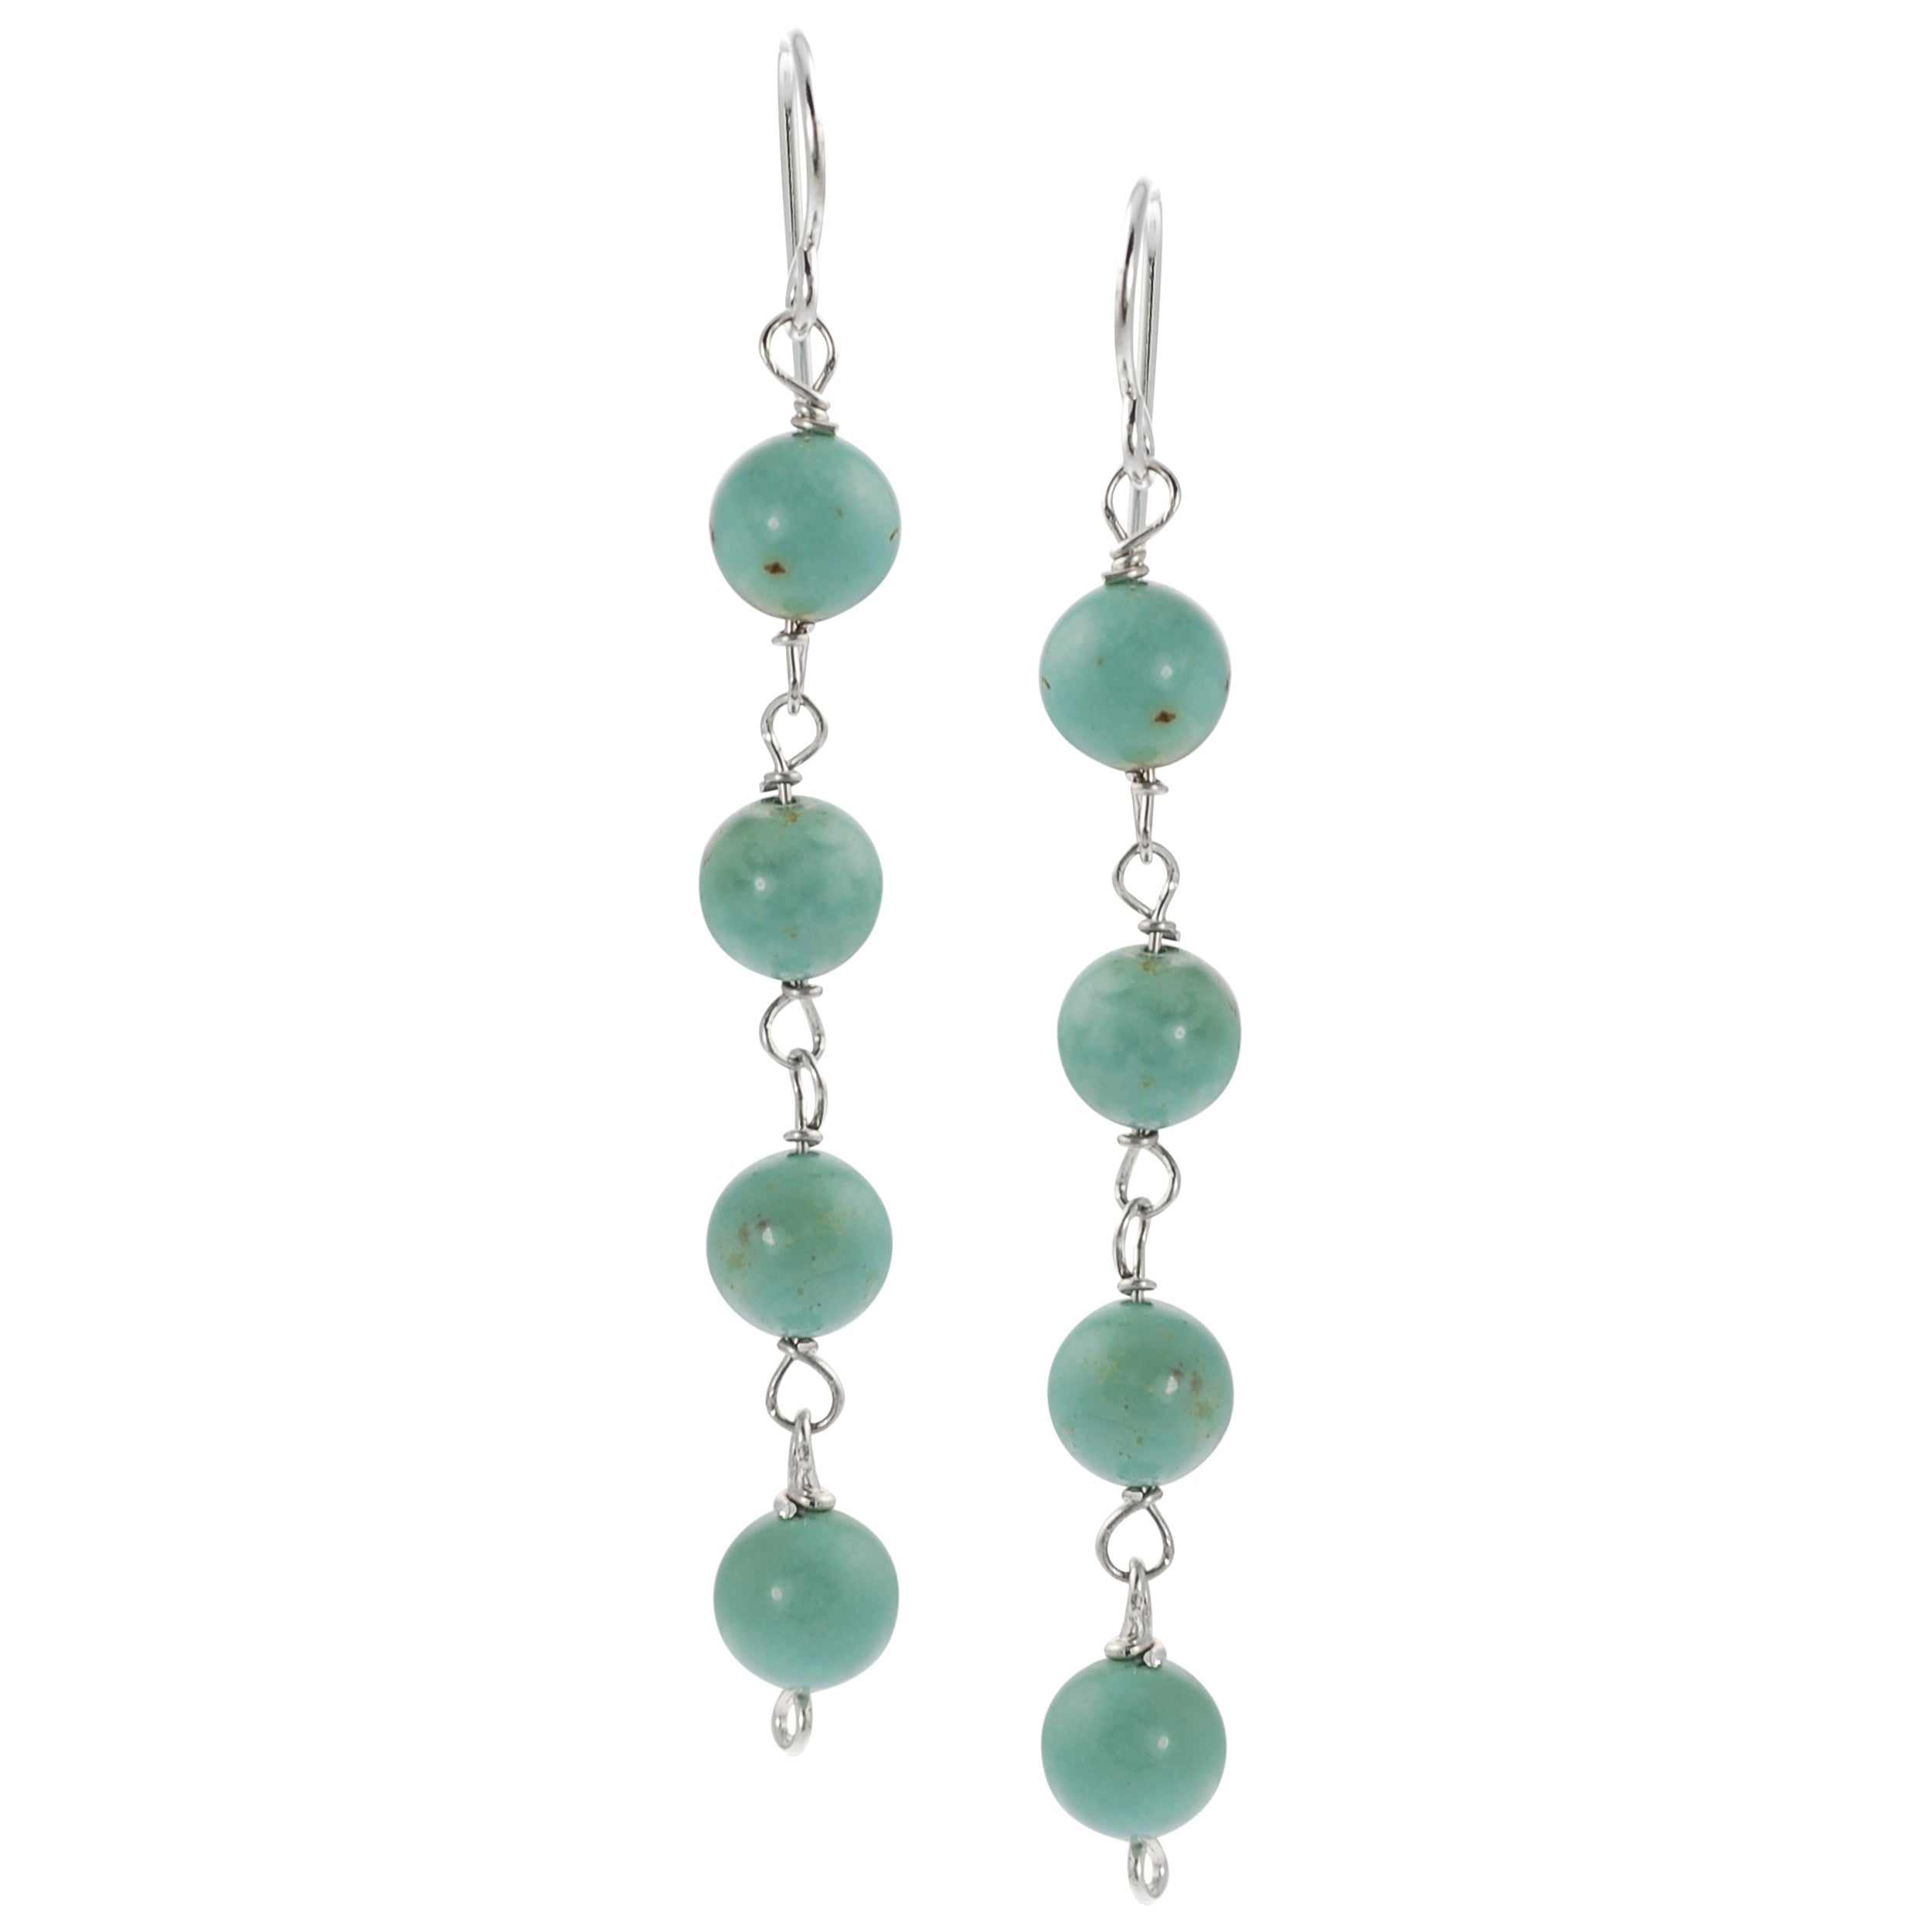 Journee Collection Sterling Silver Genuine Turquoise Dangle Earrings